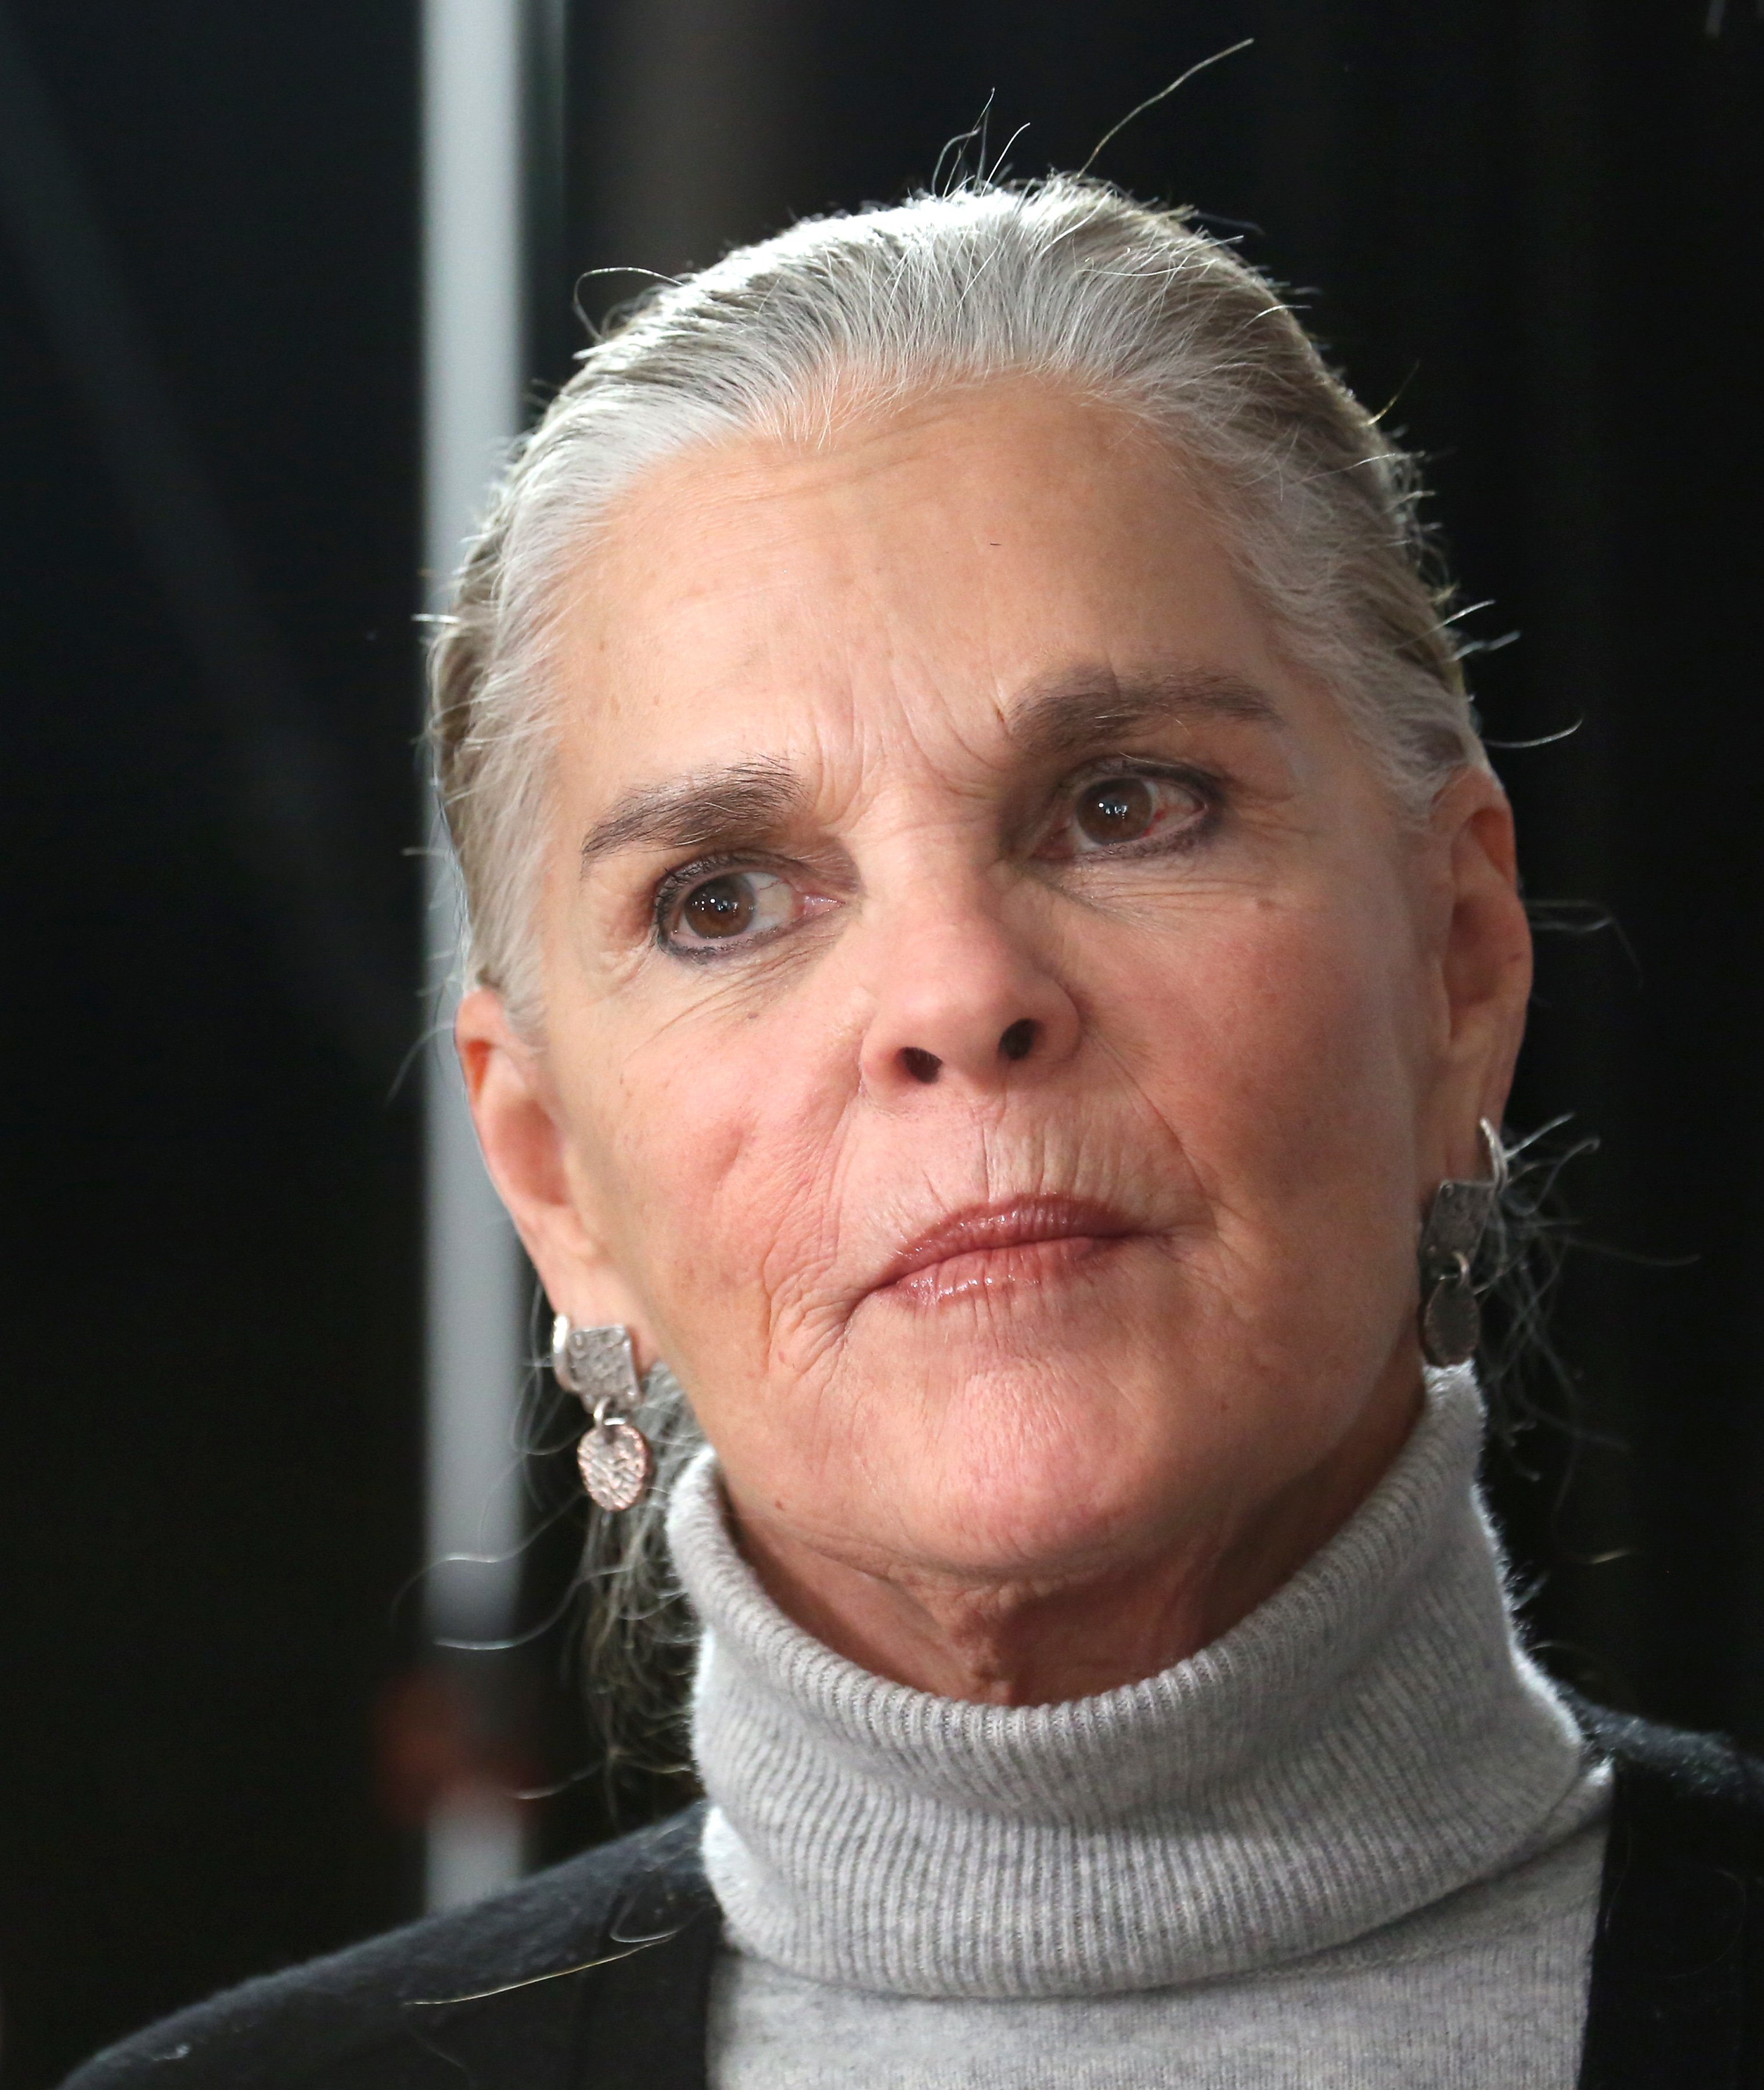 Ali MacGraw attends a photo call at The Shelter Studios Penthouse on February 24, 2015 in New York City | Photo: Getty Images